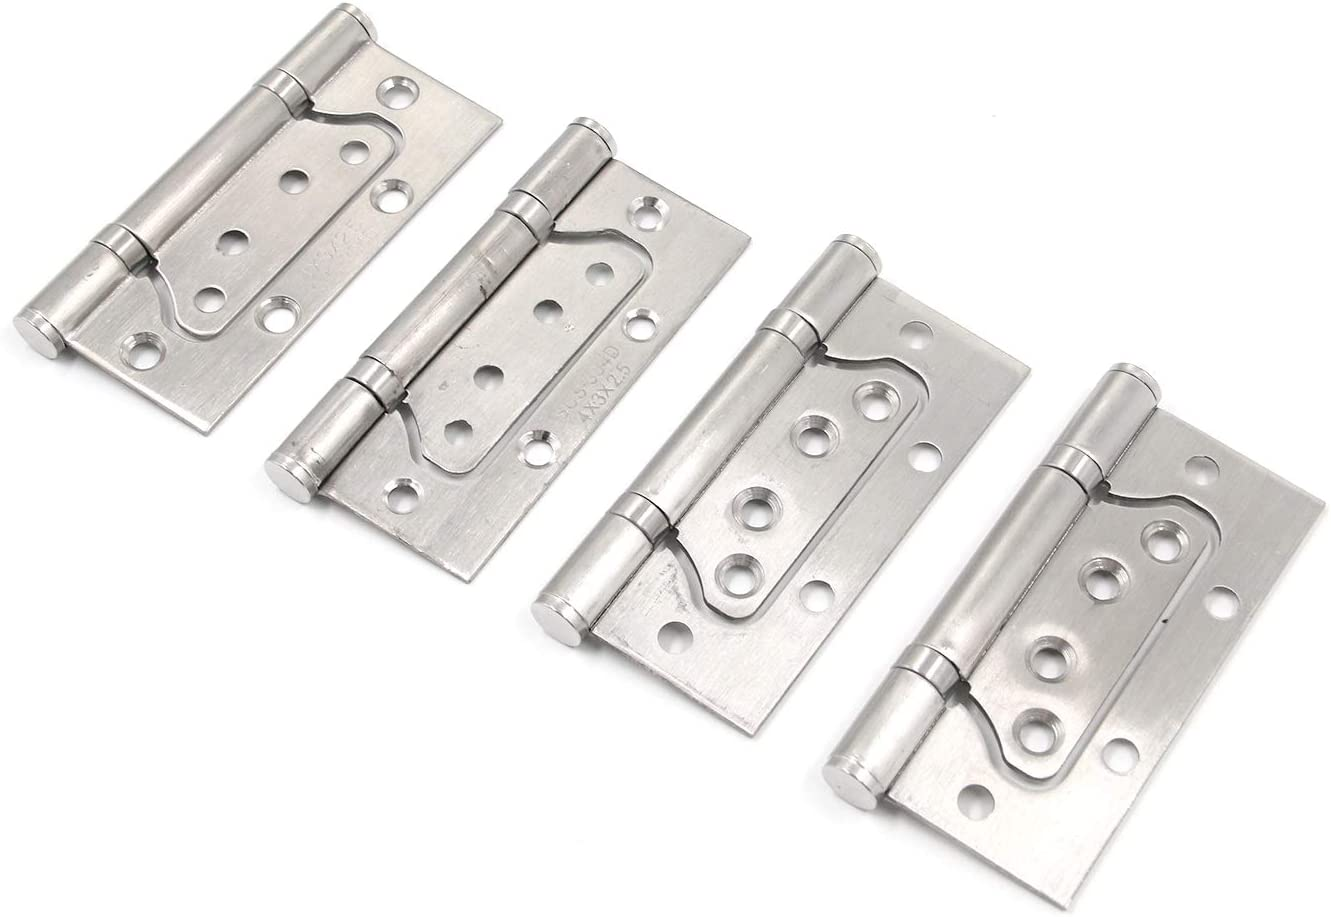 Tulead Door Hinges Stainless Steel Non-Mortise Hinges 4-Inch Shed Cabinet Gate Heavy Duty Hinges Pack of 4 with Screws